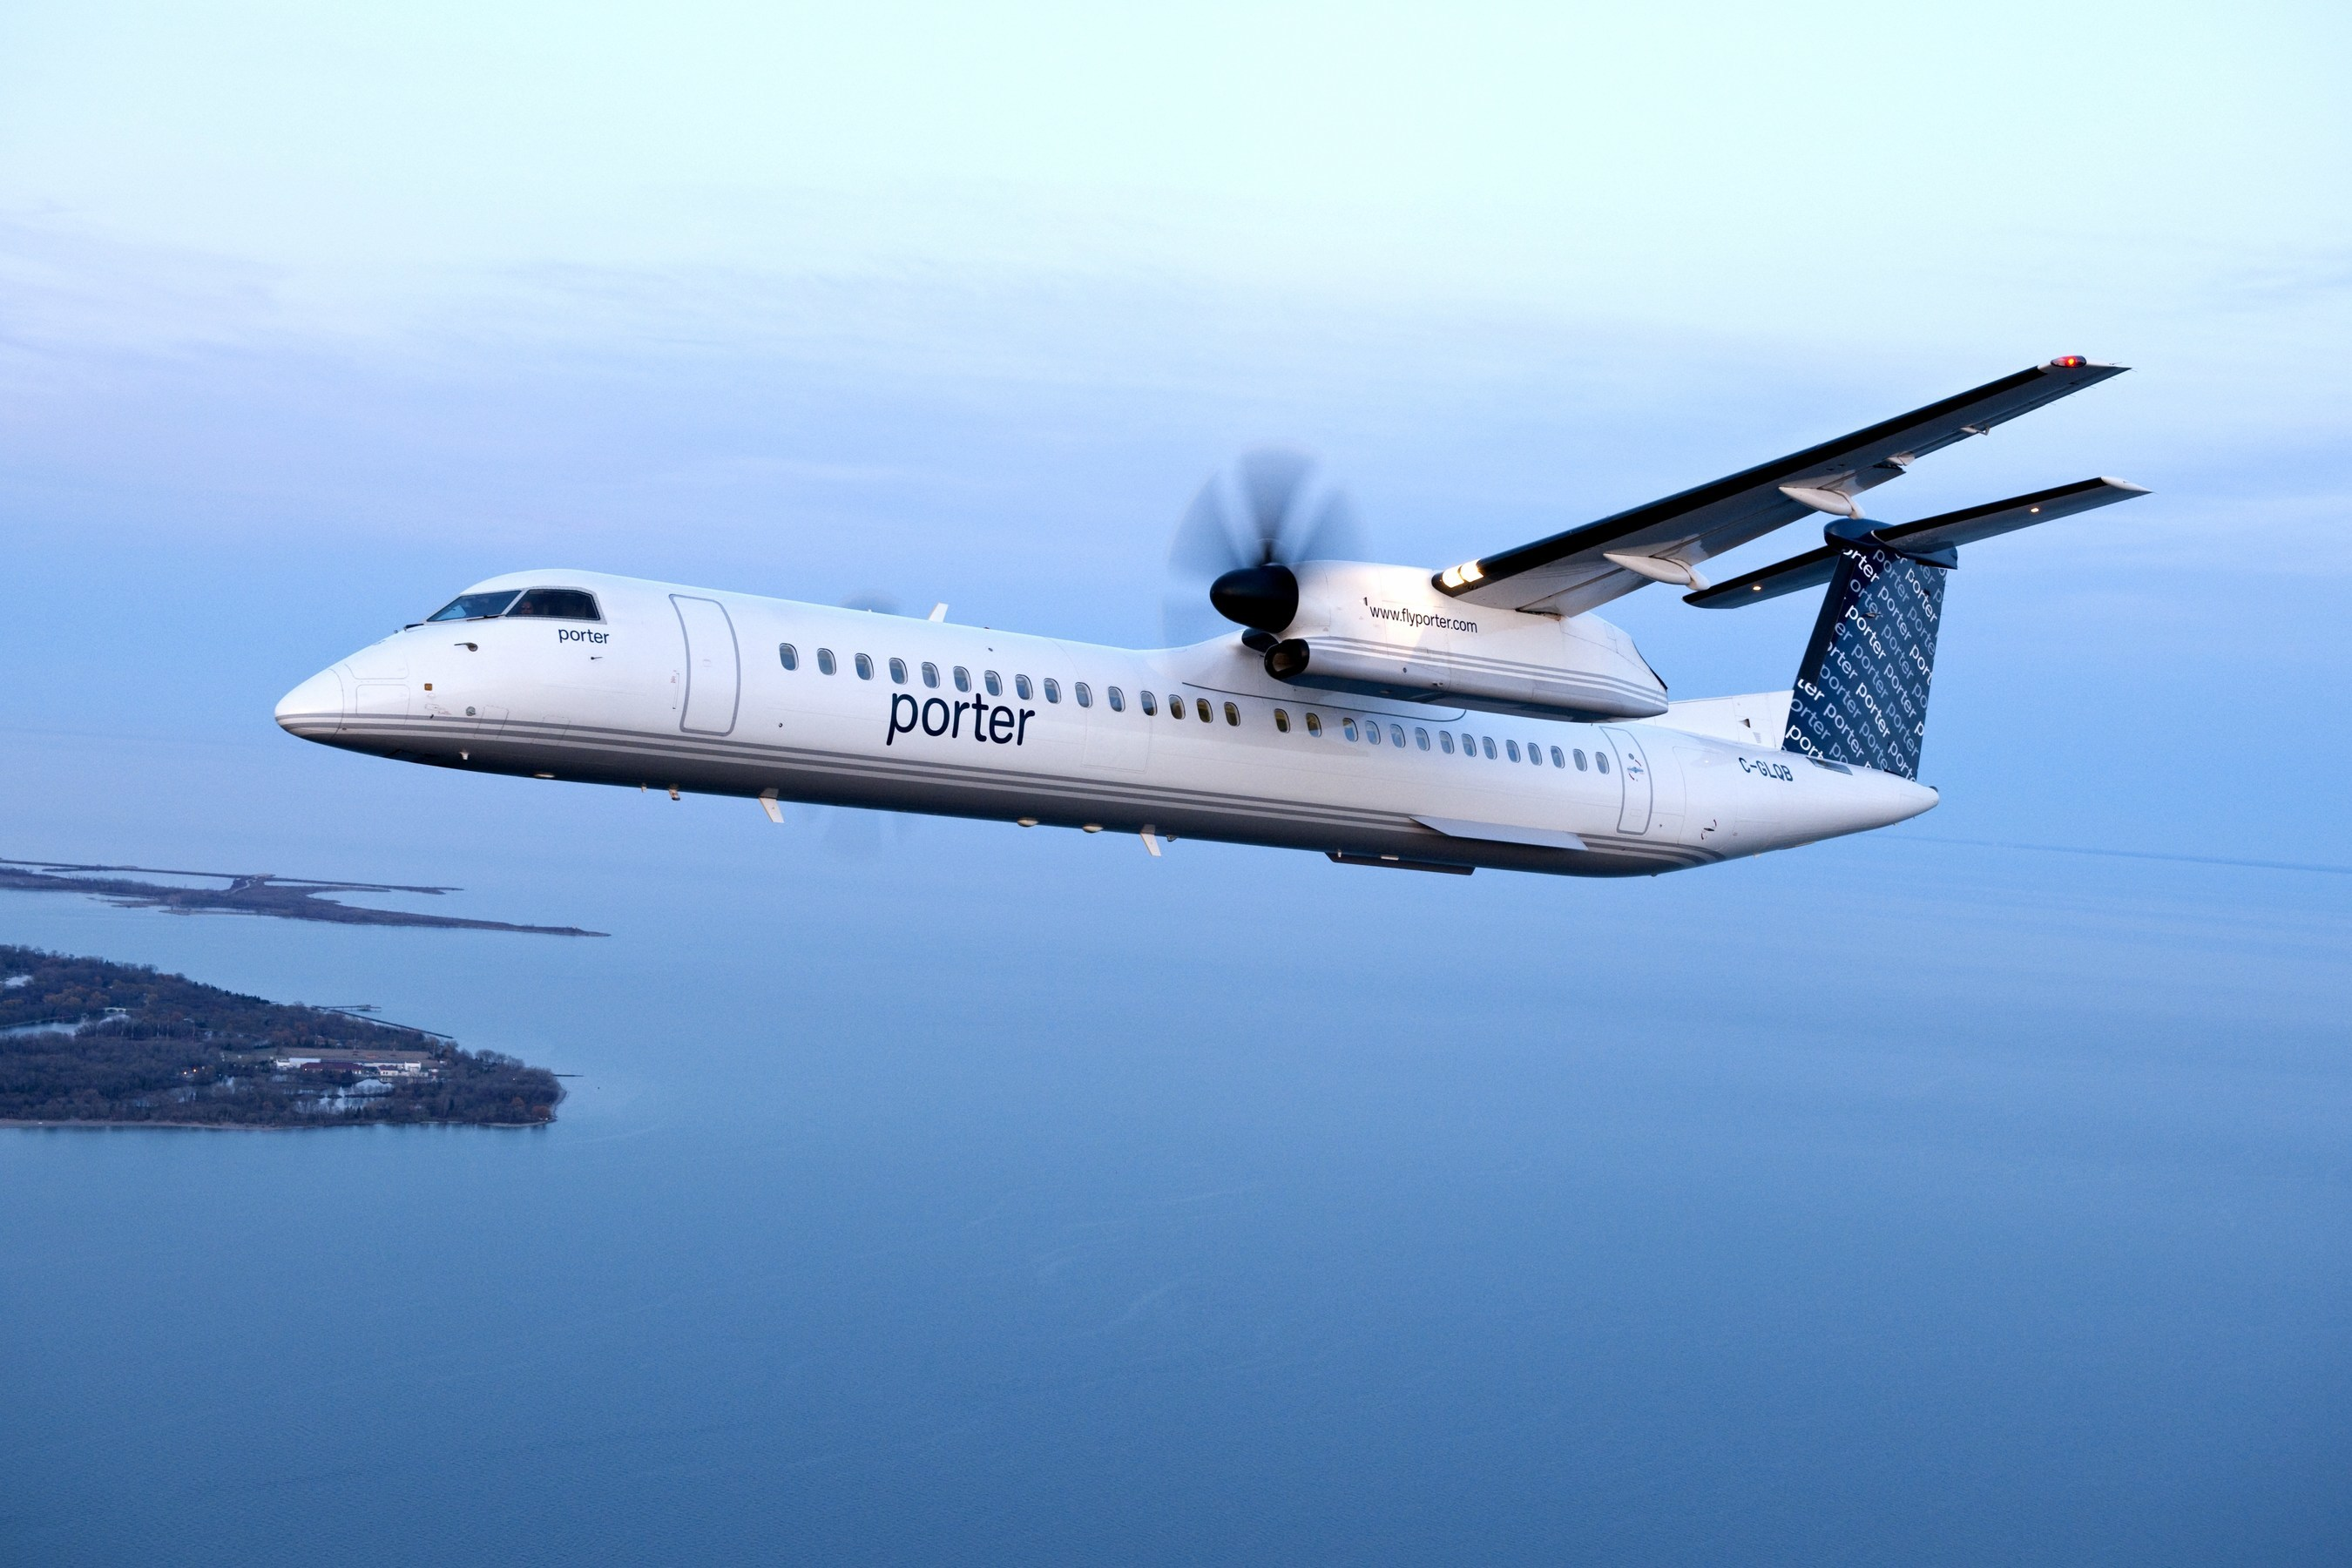 Porter Airlines is opening an aircraft maintenance base at Thunder Bay International Airport, as of February 2019. This development contributes to Porter servicing its fleet of 29 Bombardier Q400 aircraft and will create 18 jobs in the city. (CNW Group/Porter Airlines Inc.)